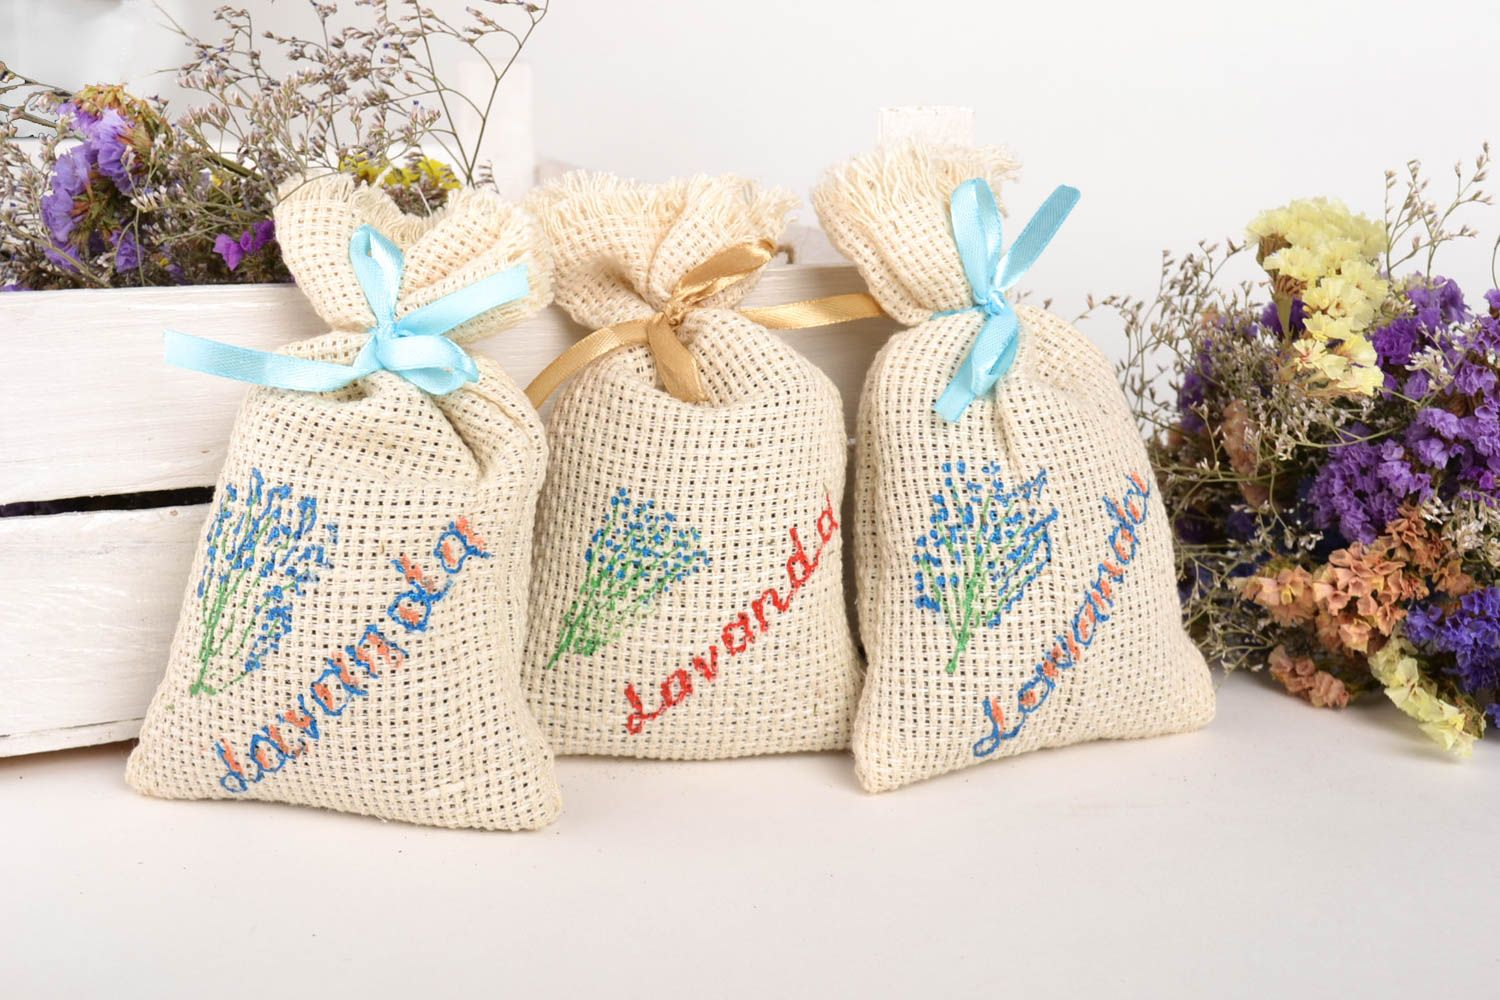 Handmade decorative sachet bag scented sachet bags 3 pieces small gifts photo 1